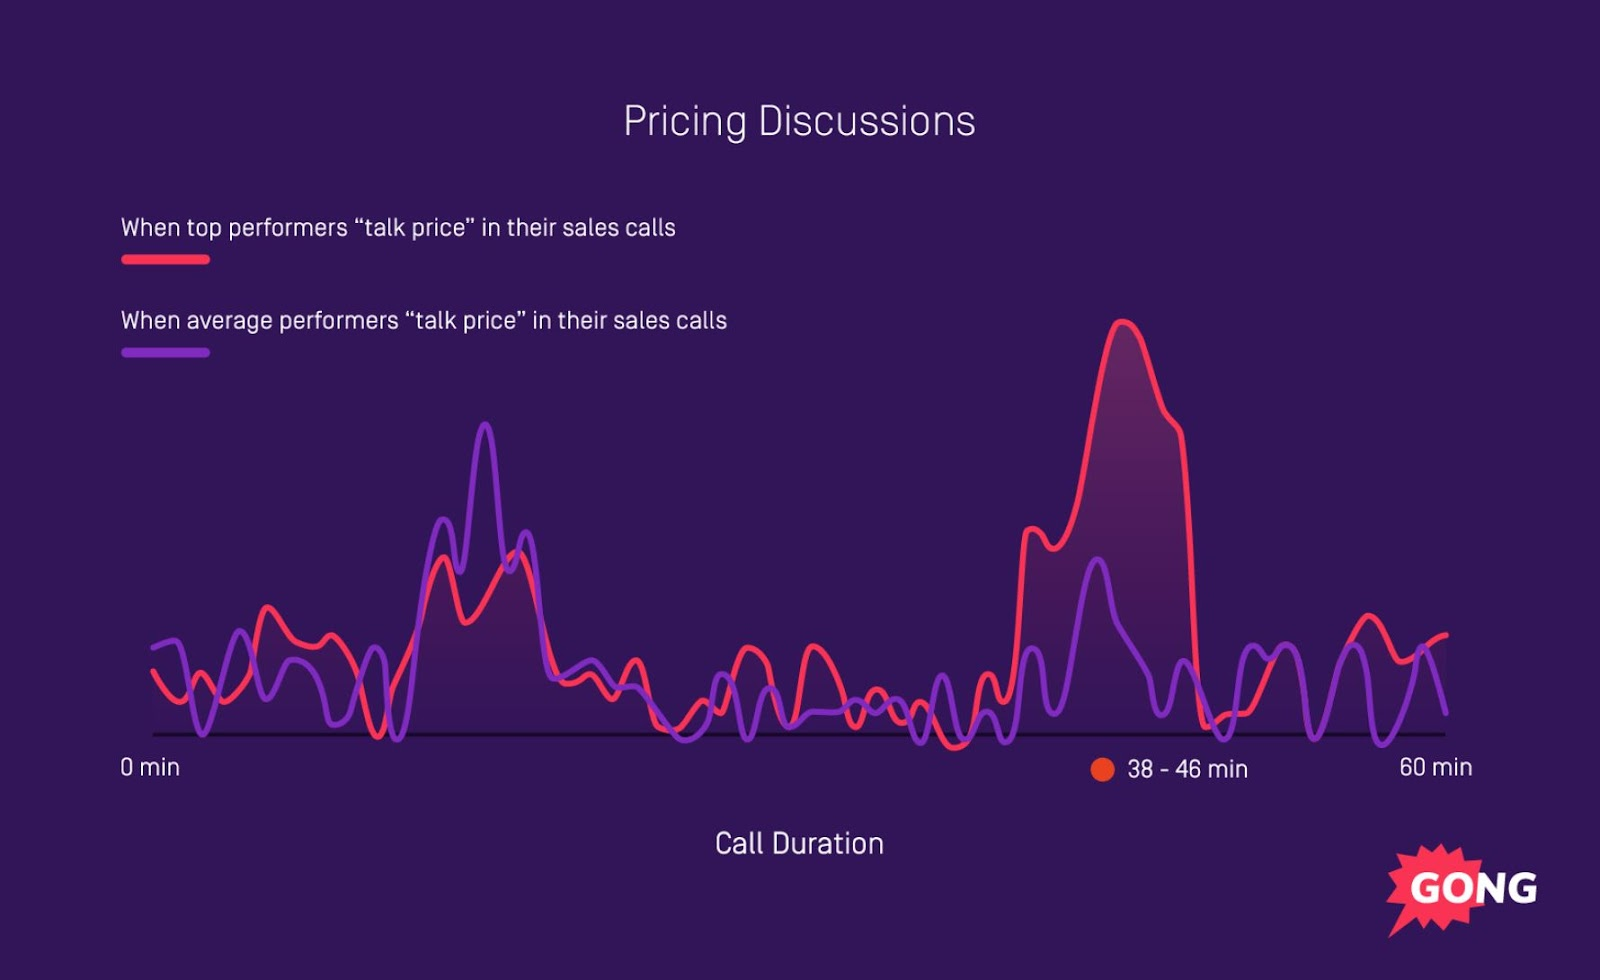 successful demos discuss pricing for 38 to 46 minutes on average